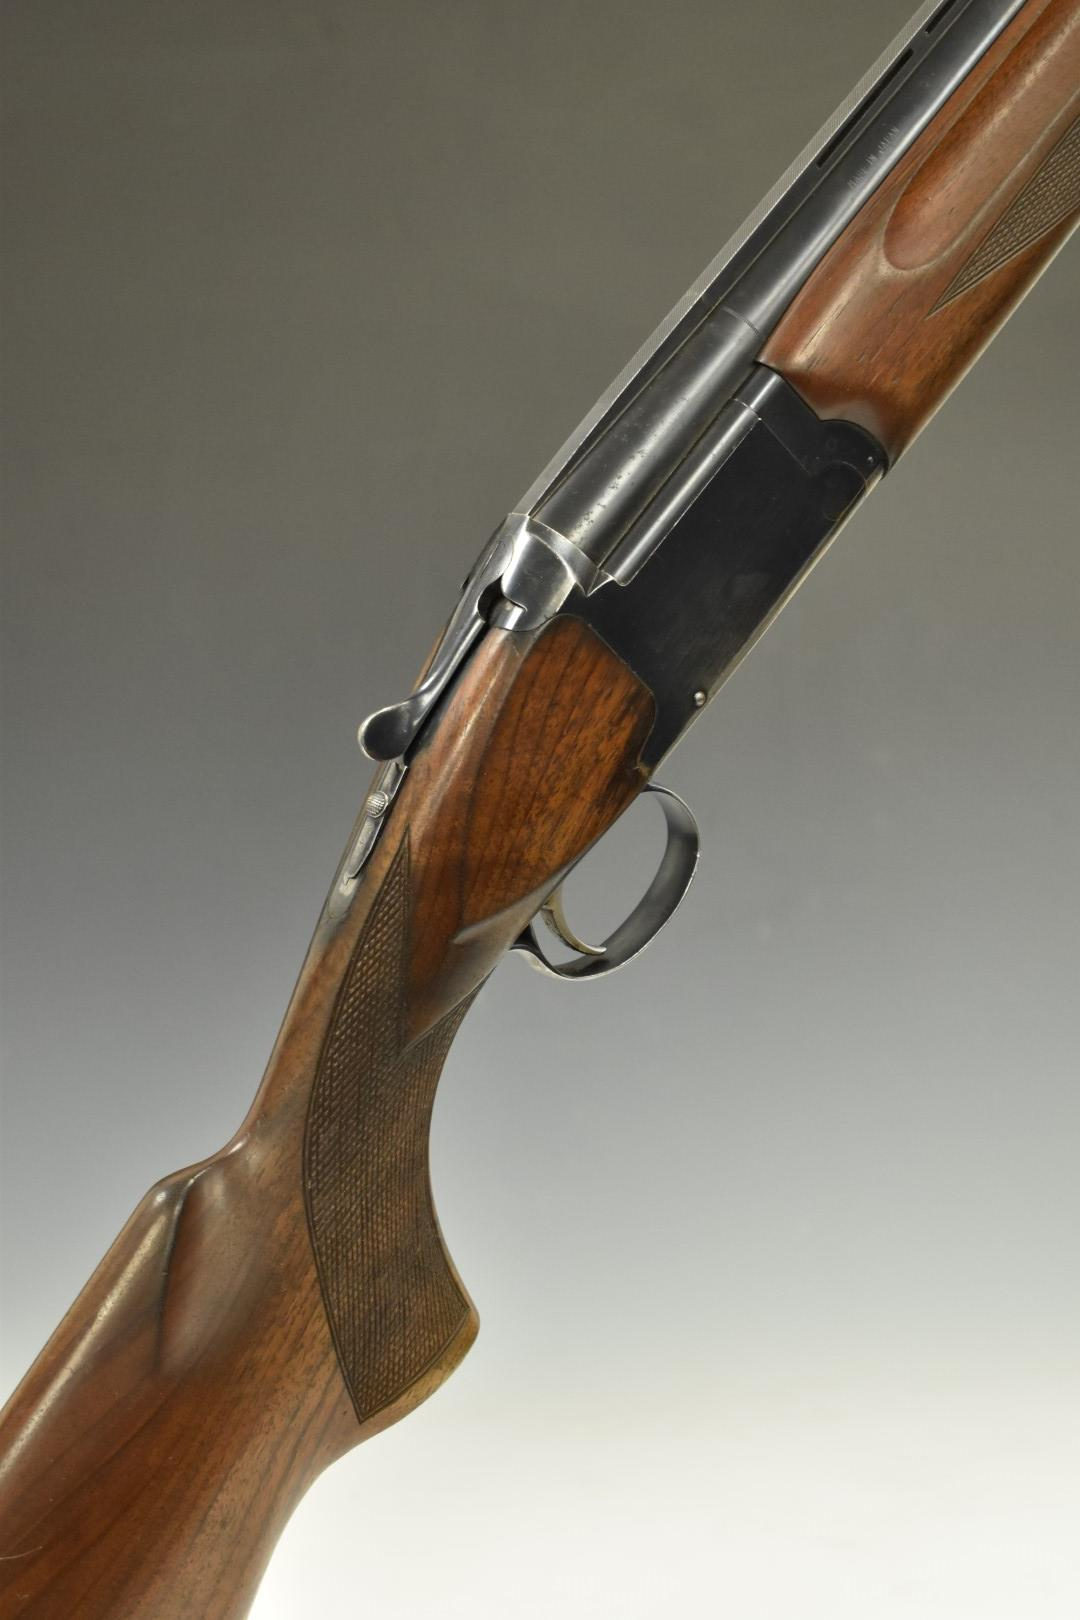 Winchester Special X 12 bore over and under shotgun with chequered semi-pistol grip and forend,